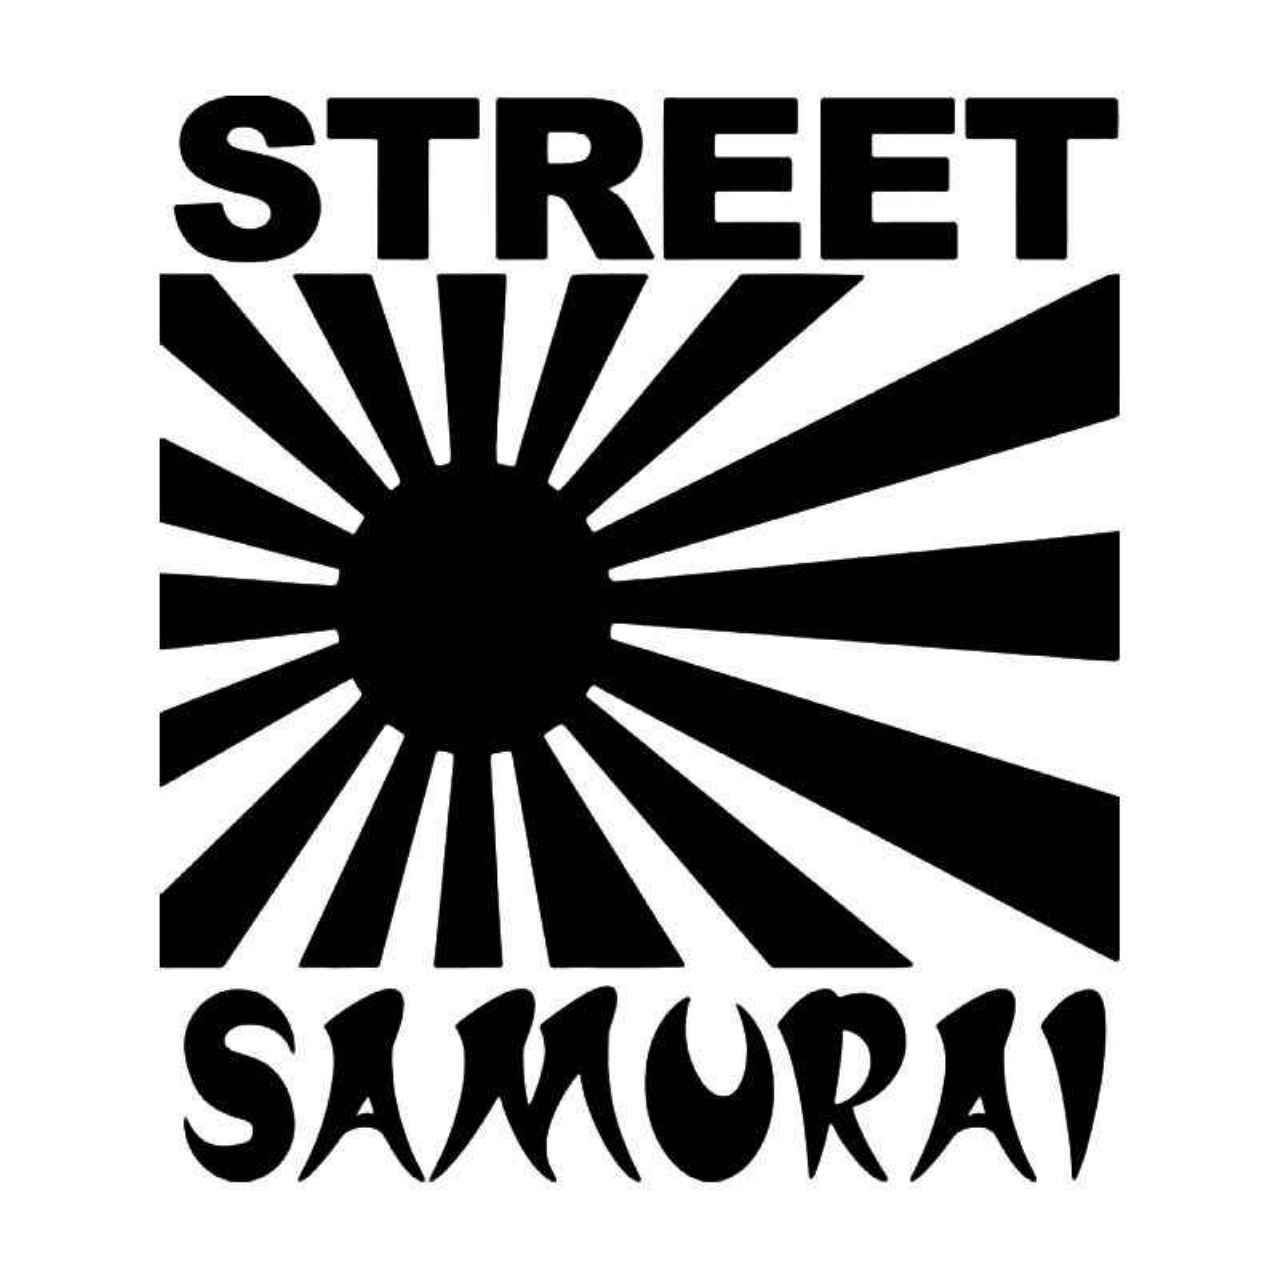 Street samurai rising sun jdm japanese vinyl decal sticker ballzbeatz com car decals vinyl